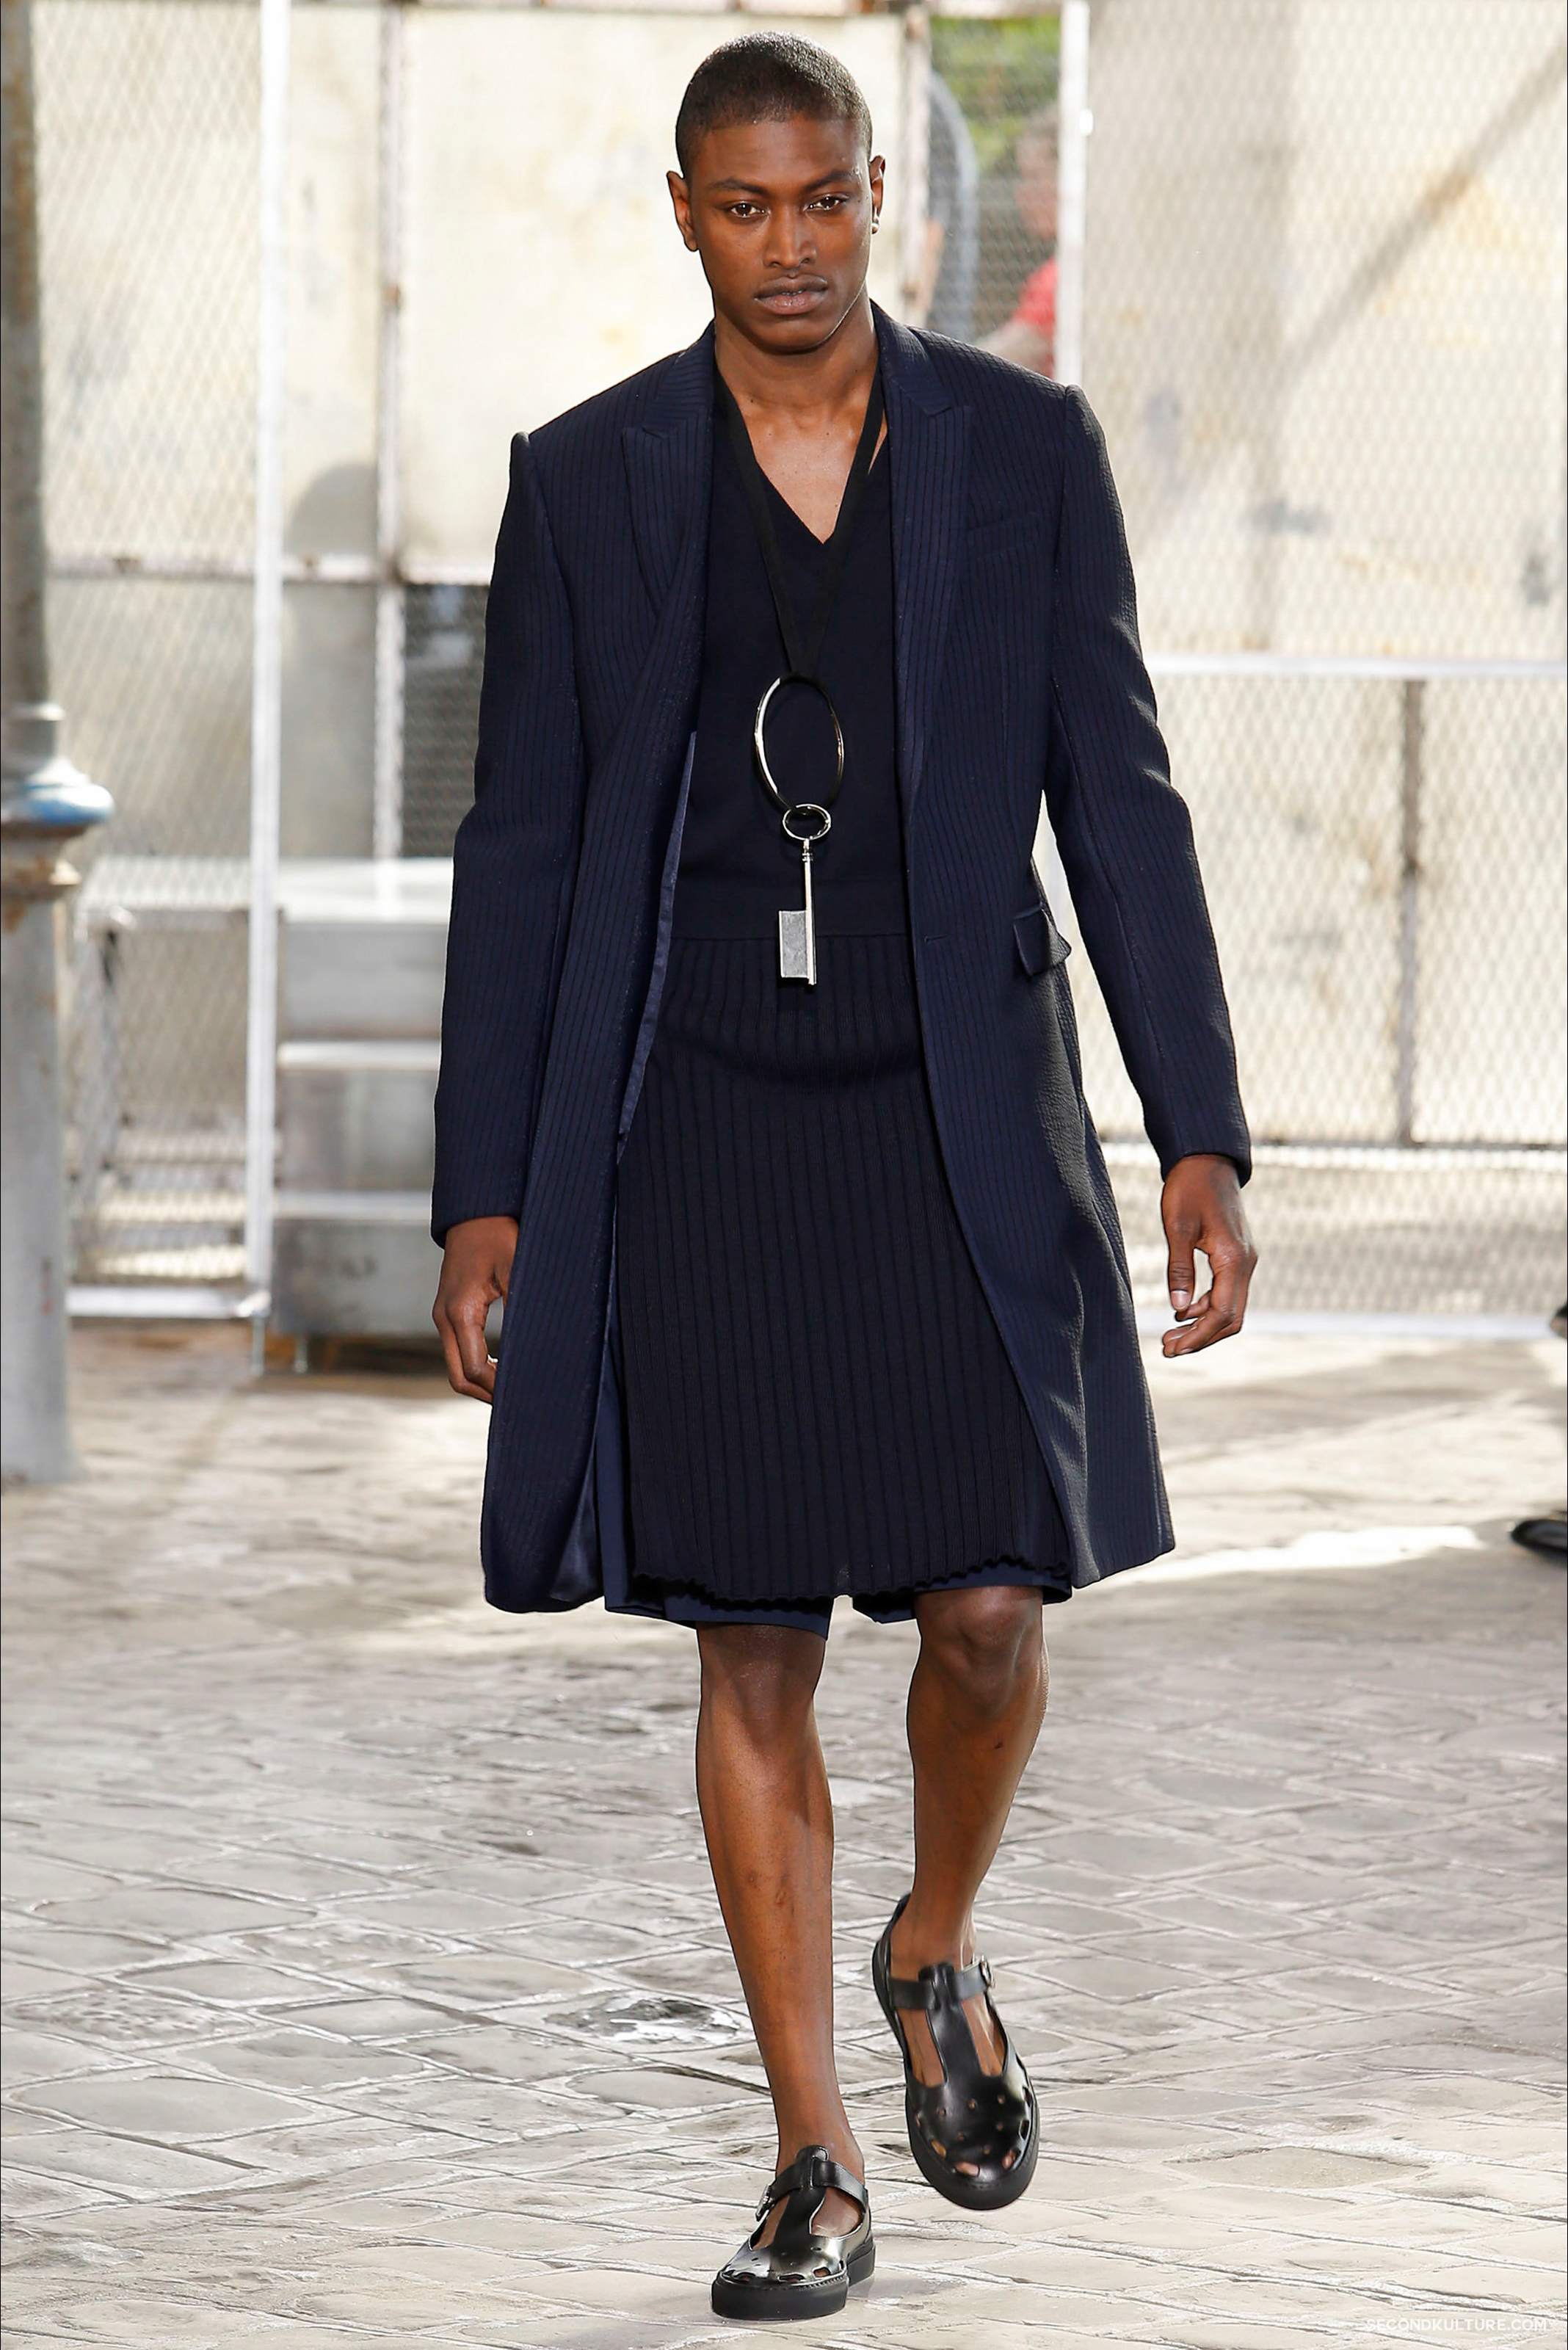 Givenchy Spring Summer 2016 Menswear Jesus Religion Chain Runway Show Look 3